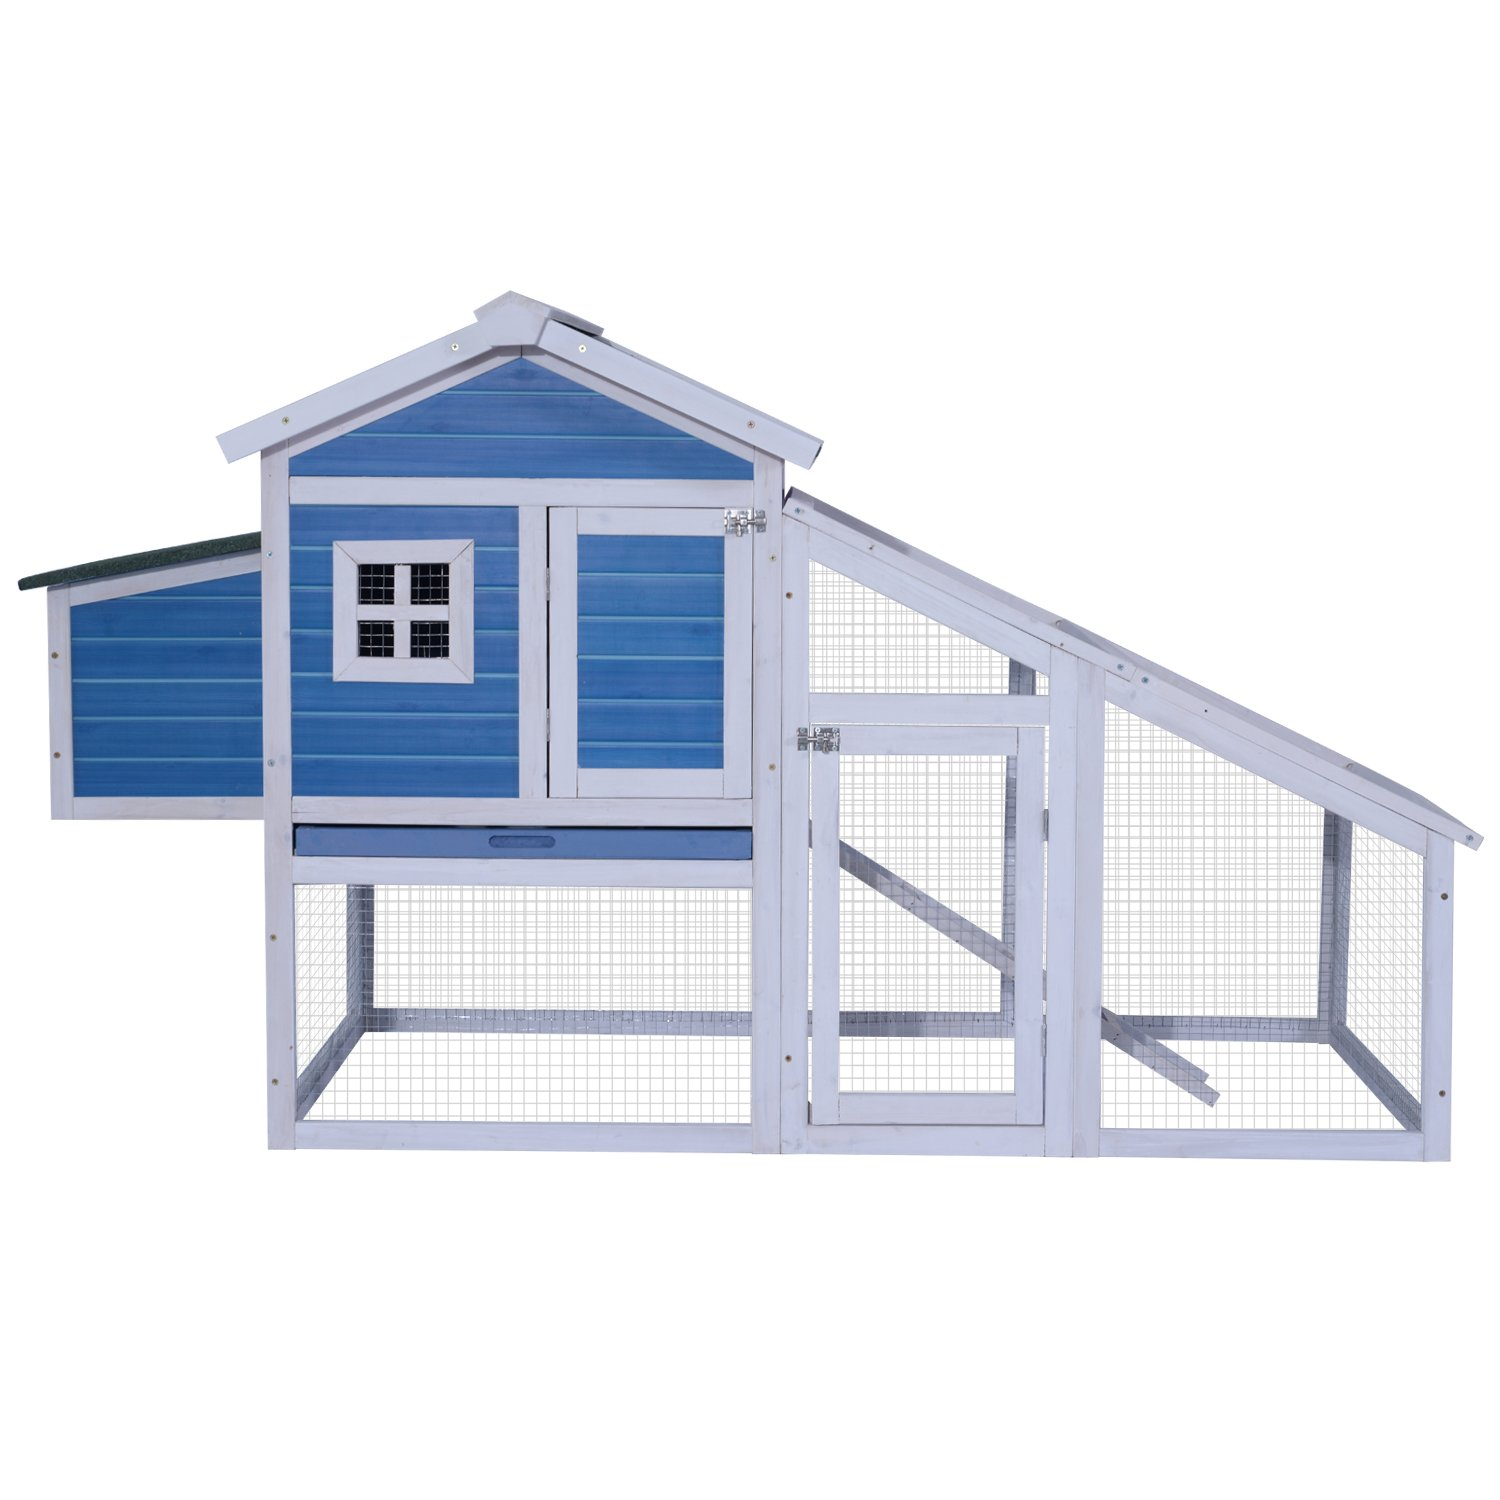 "Lovupet 70"" Deluxe Wood-Plastic Composite Coop Backyard Nest Box Pet Cage Rabbit Hen Hutch  N0326 (Blue)"